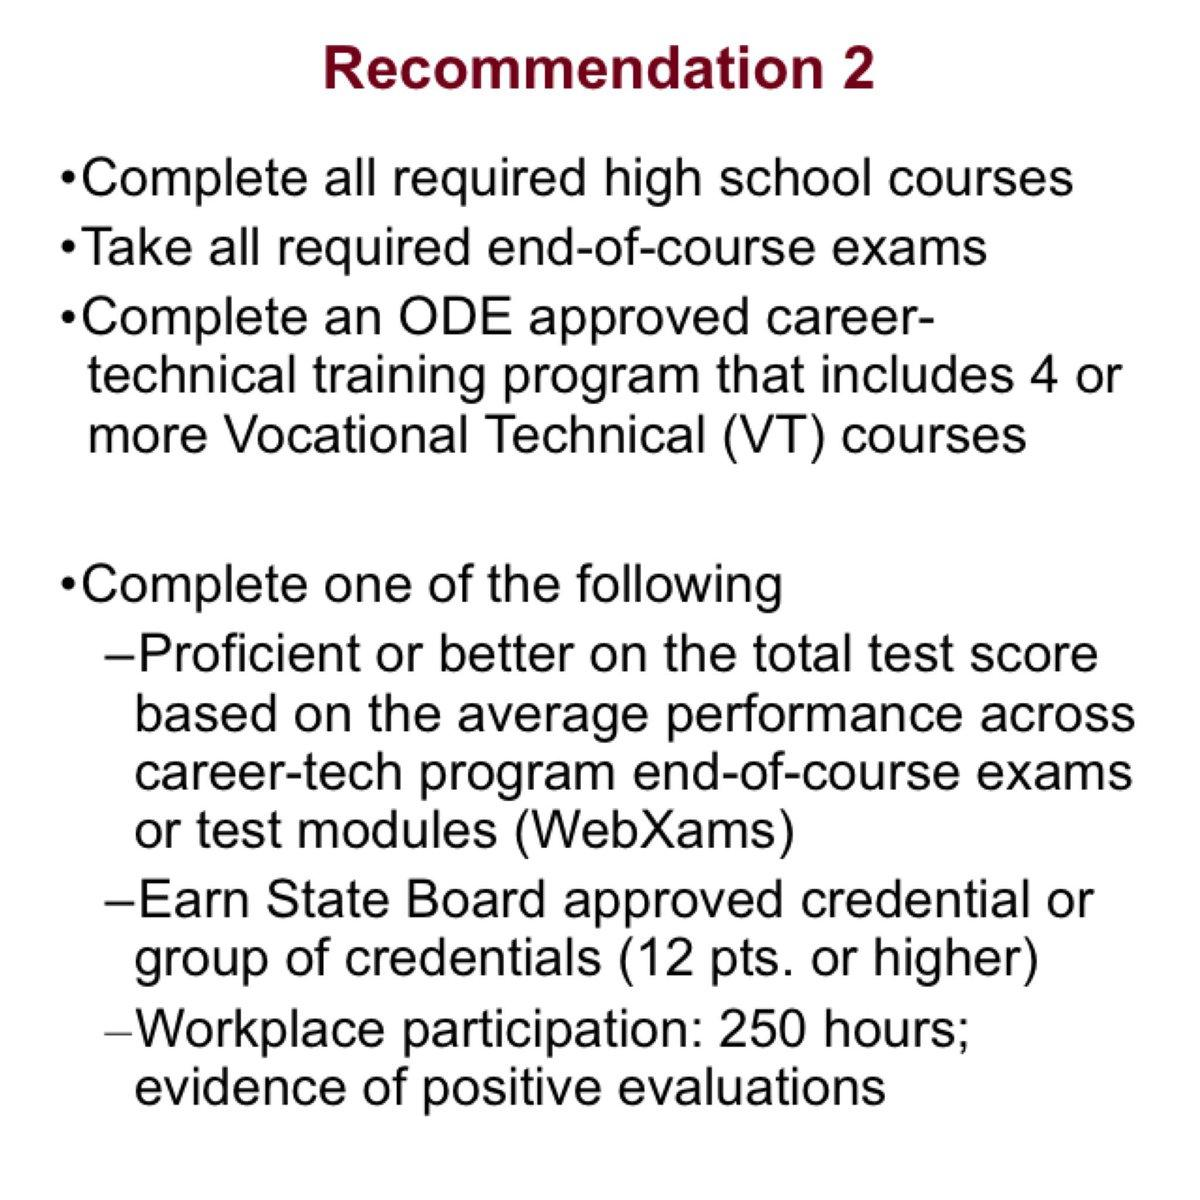 in the room where it happens changes to high school graduation recommendation 2 offers other options along the career technical training pathway